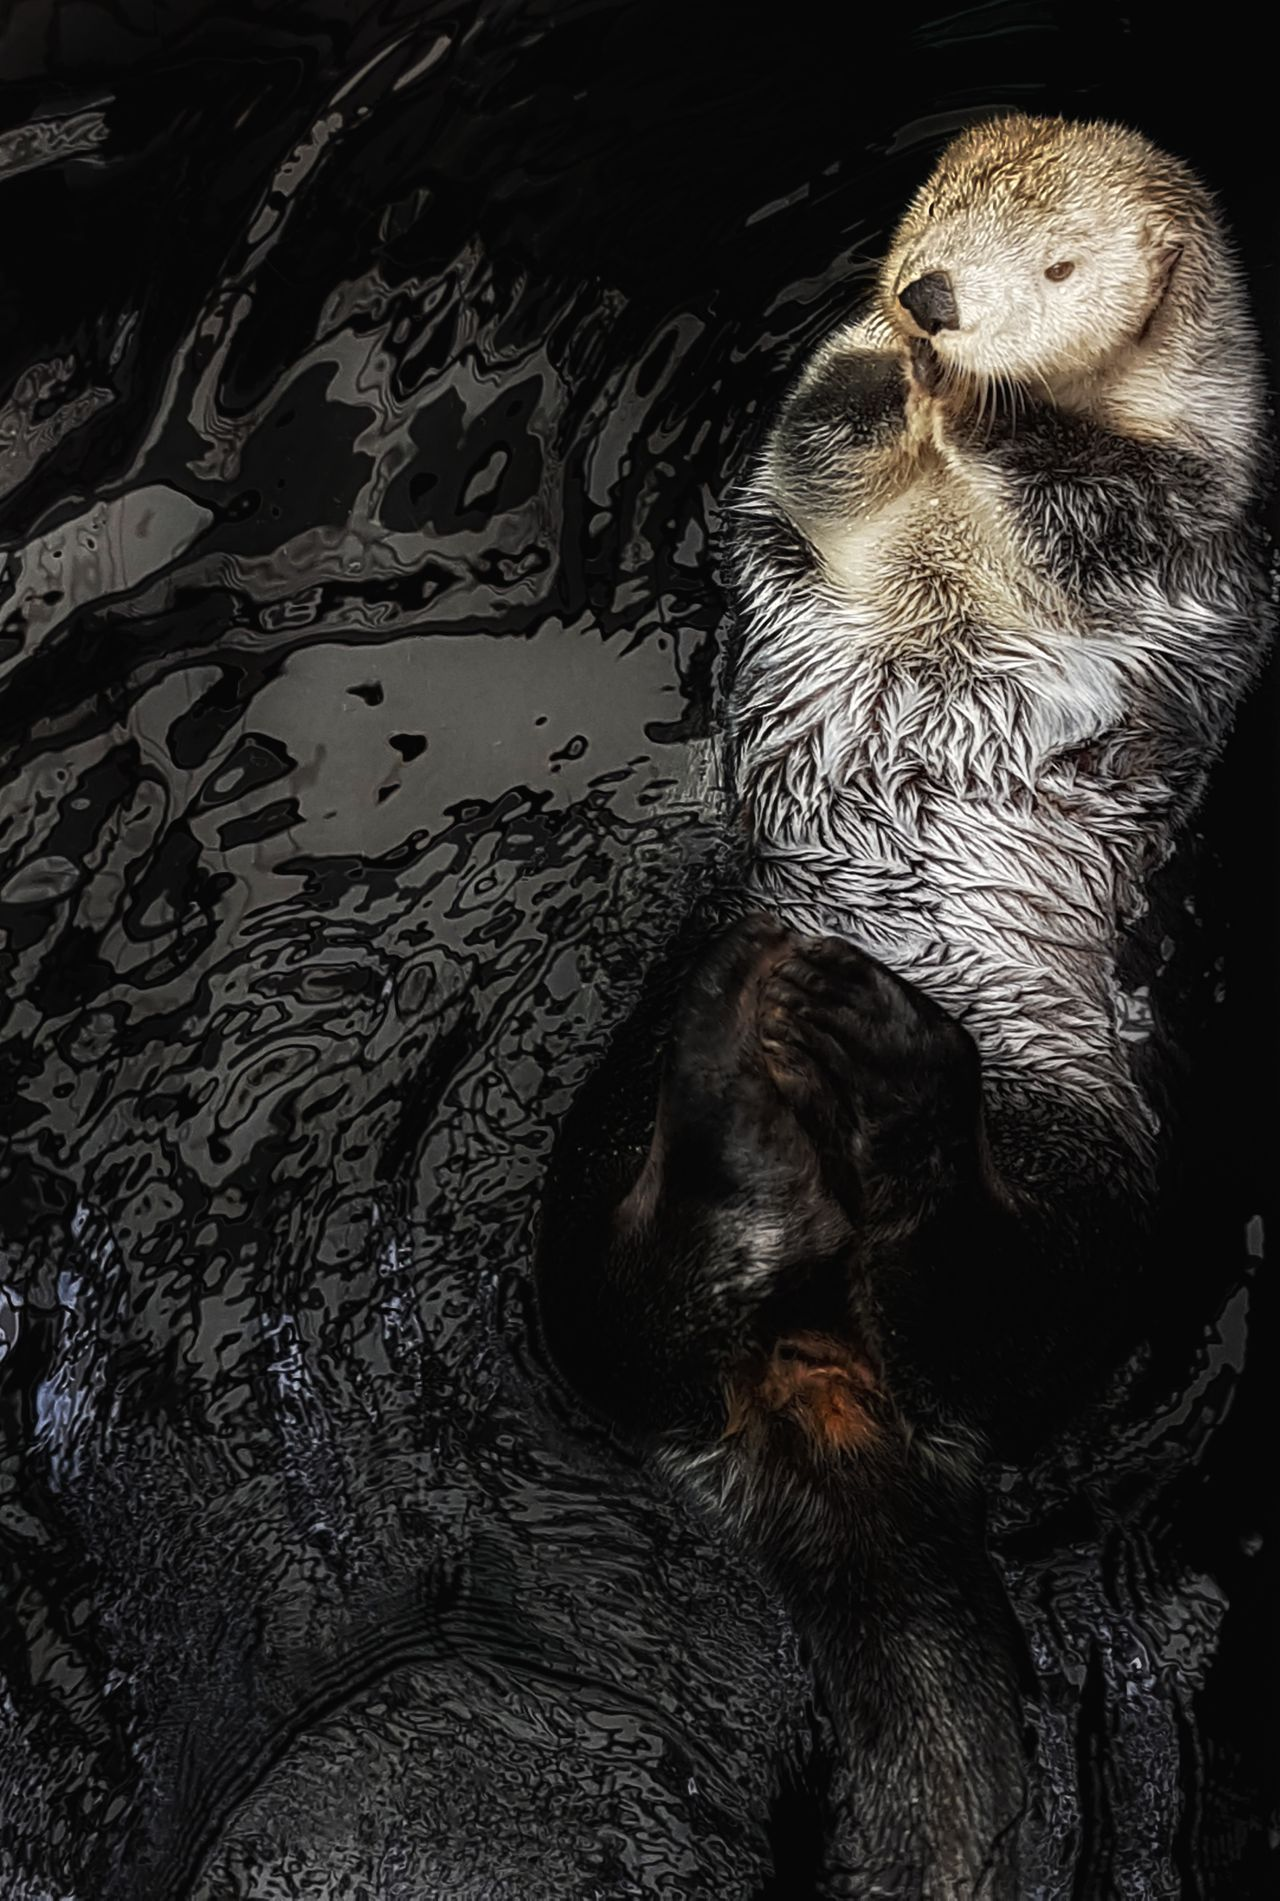 Wildlifephotography Wildlife & Nature Wildlife Scenery Animal Themes Animal Wildlife Cute Otter Otters Sea Otter Nature Water Relax Furry Close-up